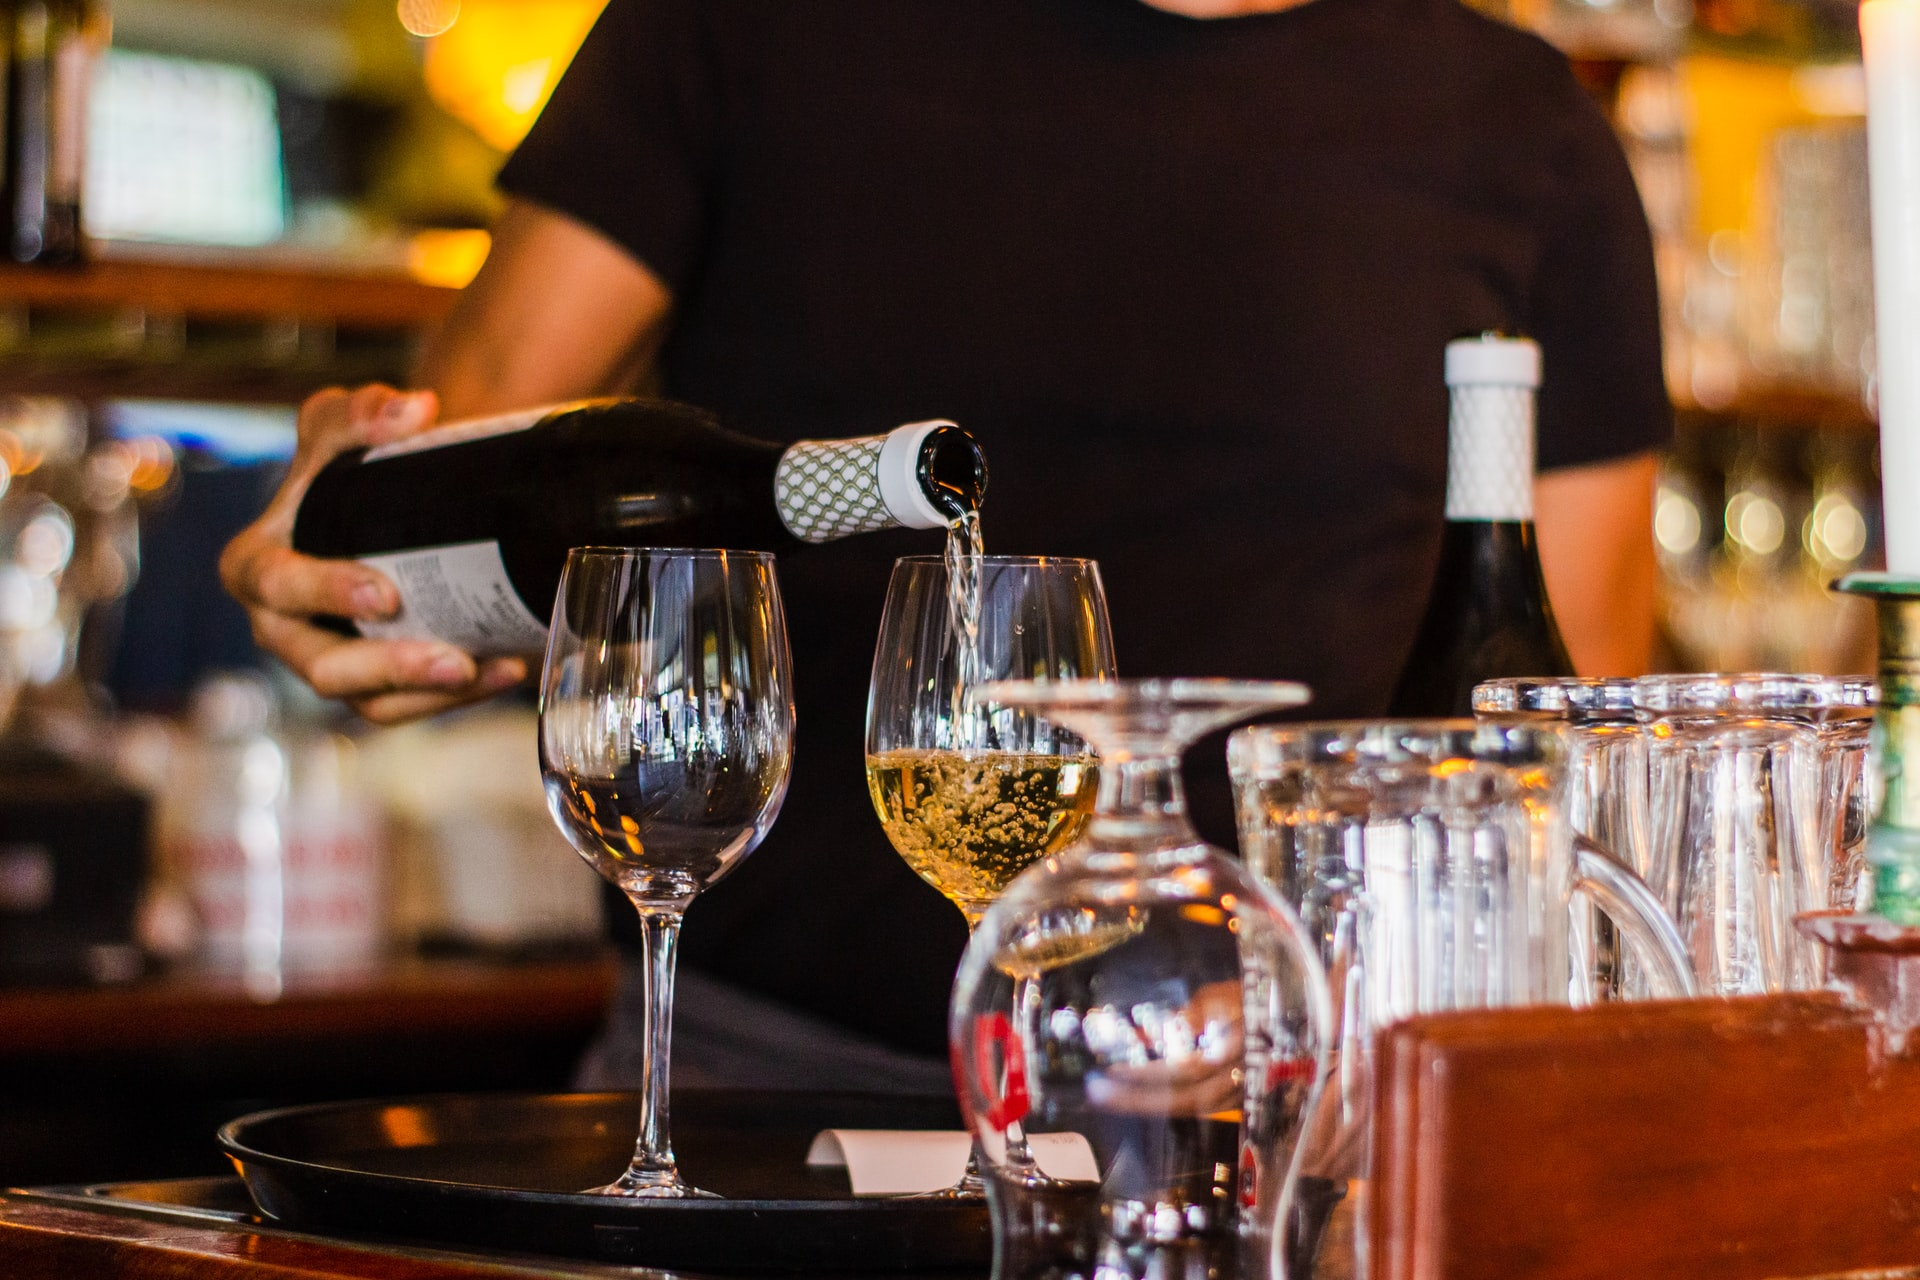 10 incredible Wine Bars to Check Out in Philly